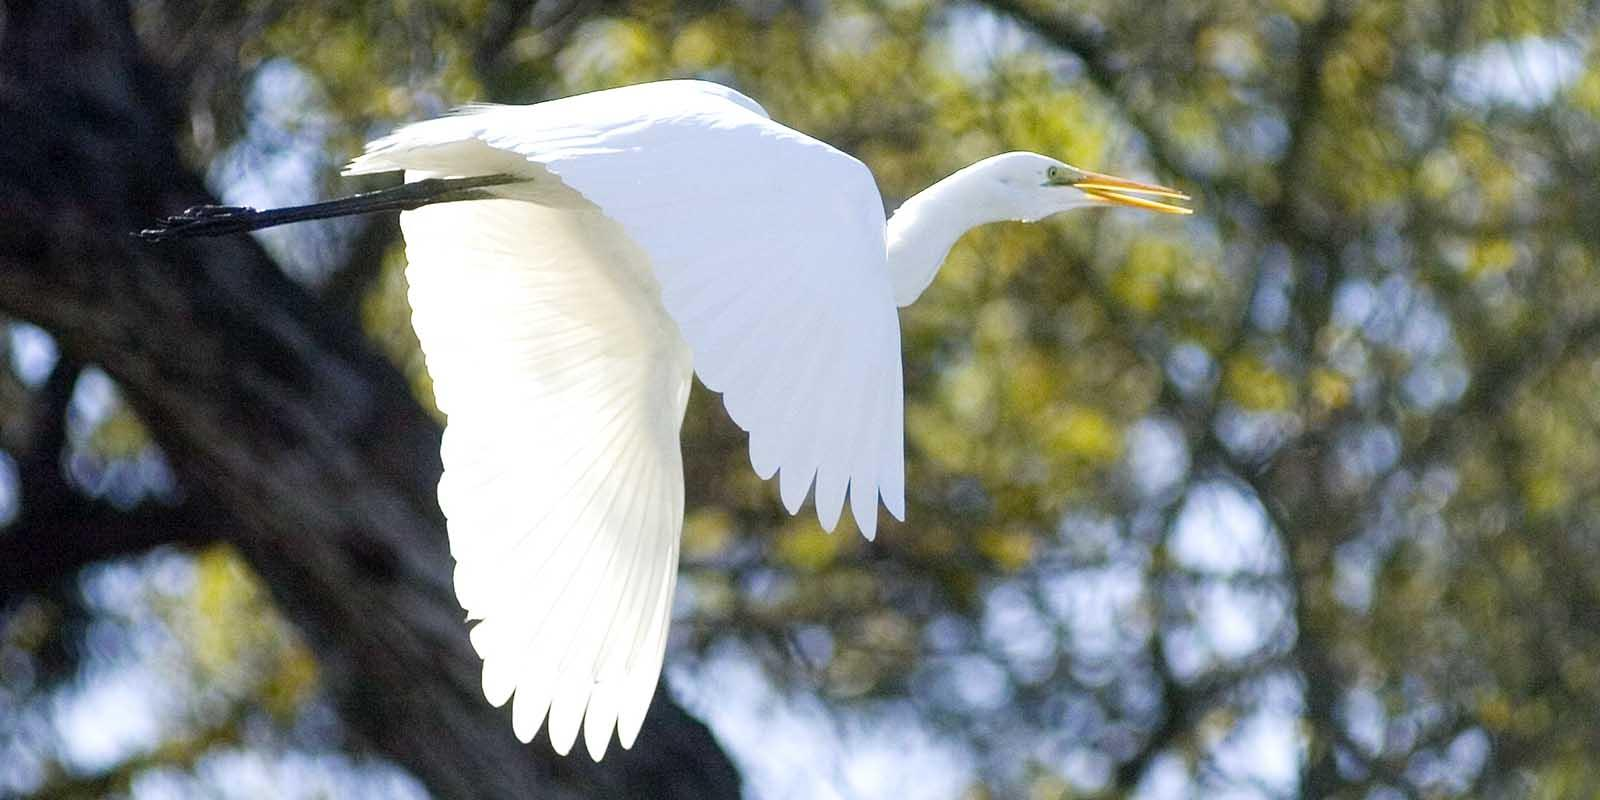 A cattle egret makes a springtime visit at the Lyle Center